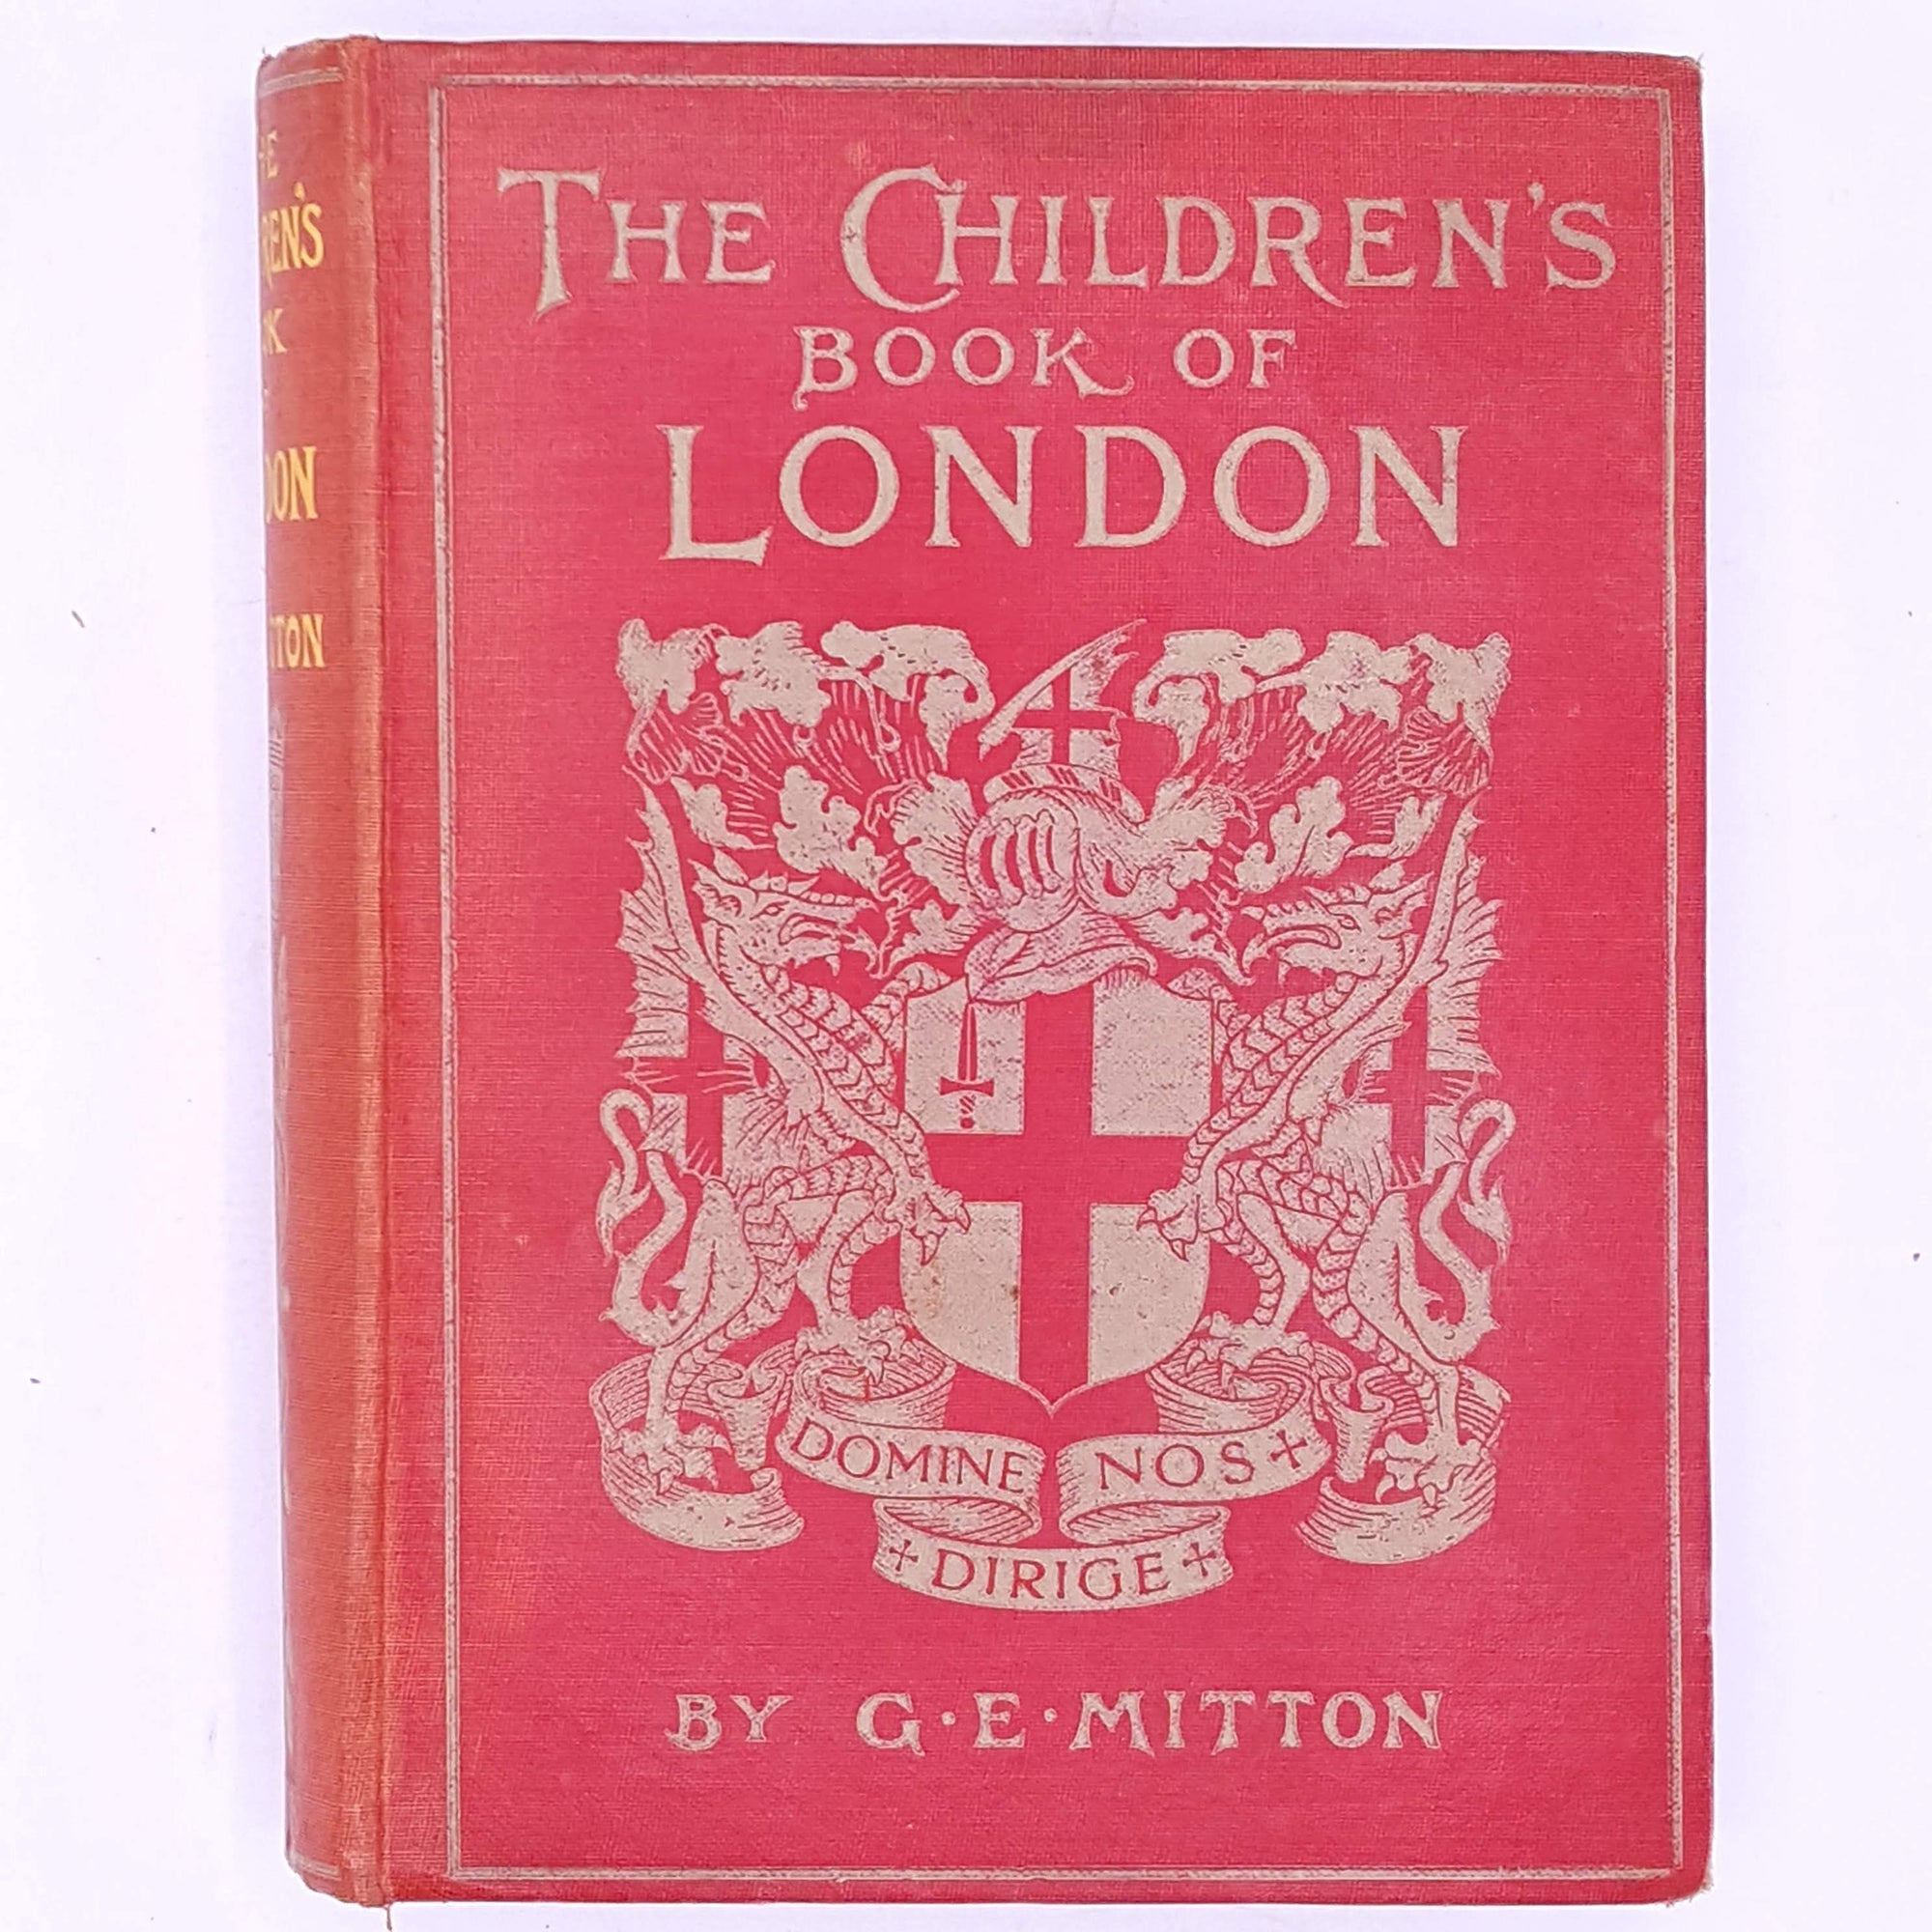 london-england- decorative-classic-antique-thrift-country-house-library-patterned-old-uk-The-Childrens-Book-Of-London-By-G.E.-Mitton-vintage-books-